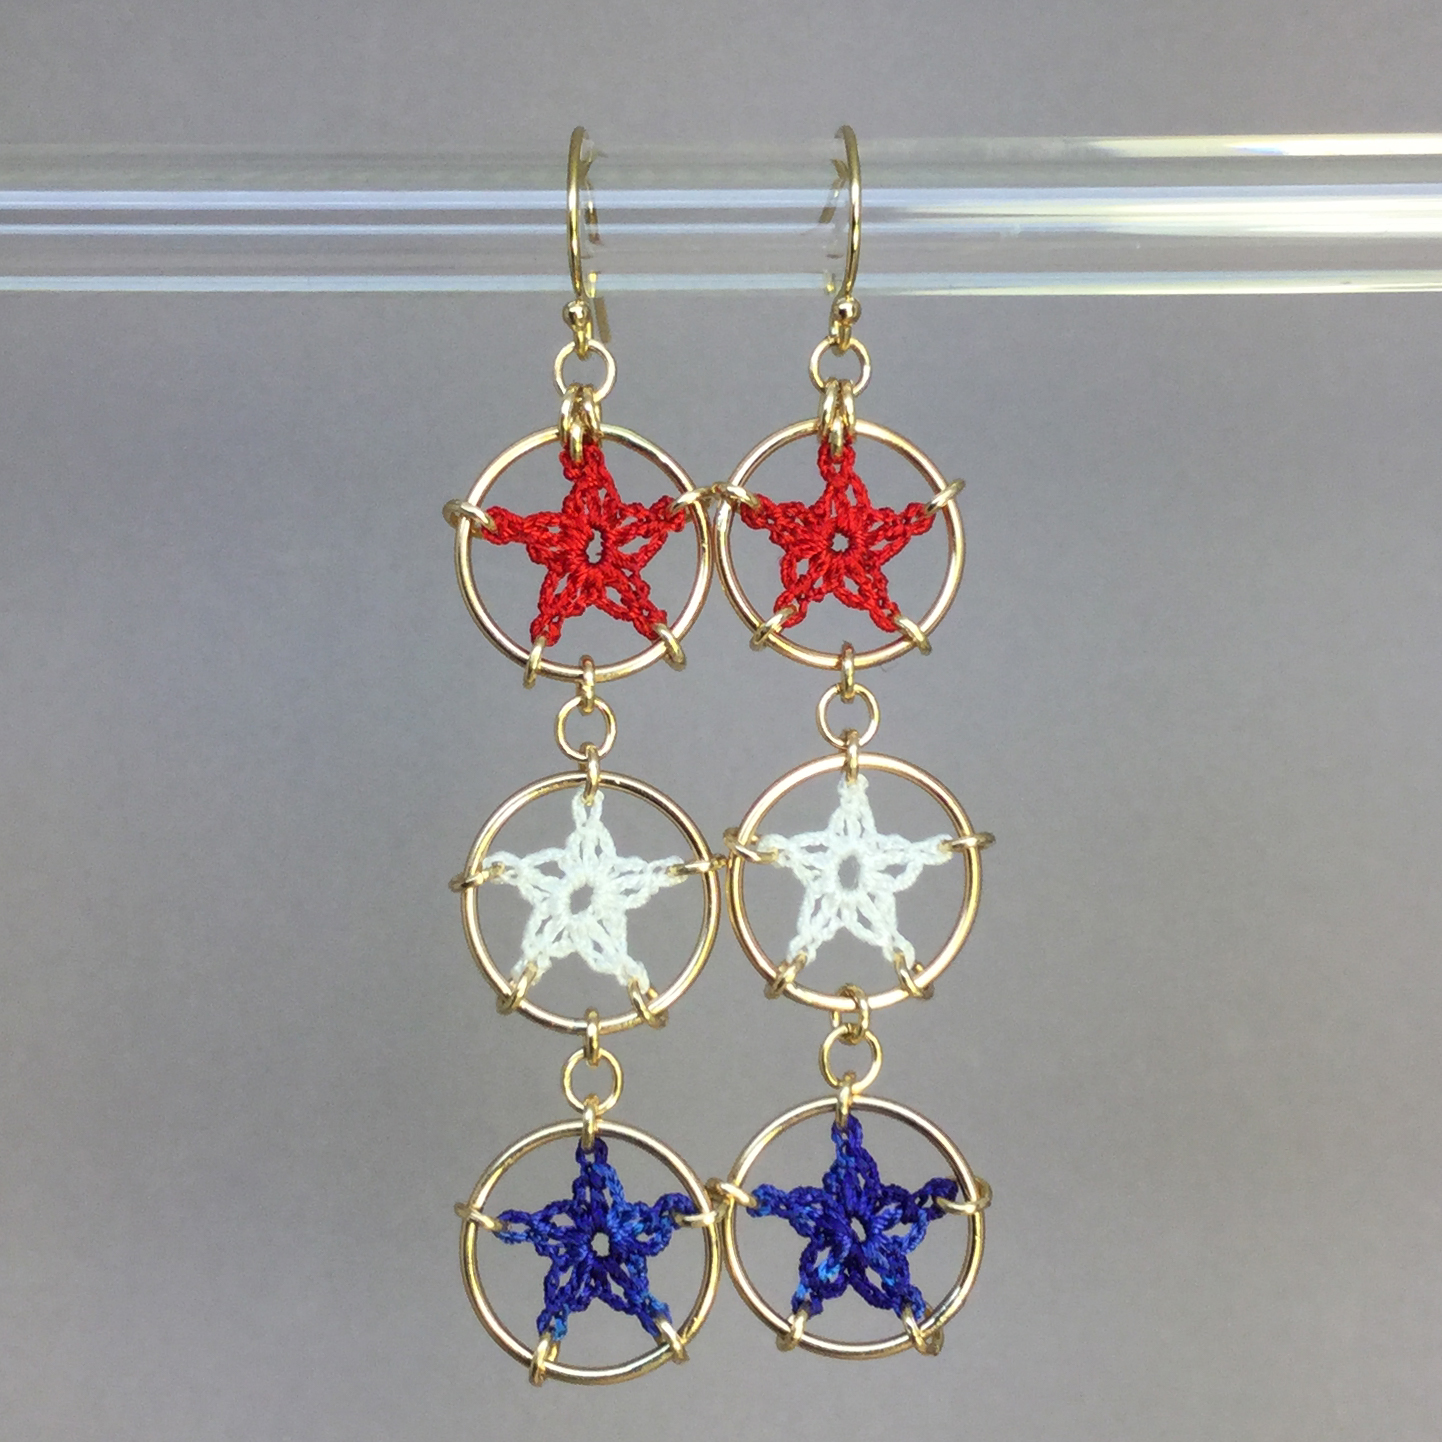 Stars earrings, gold, red white blue